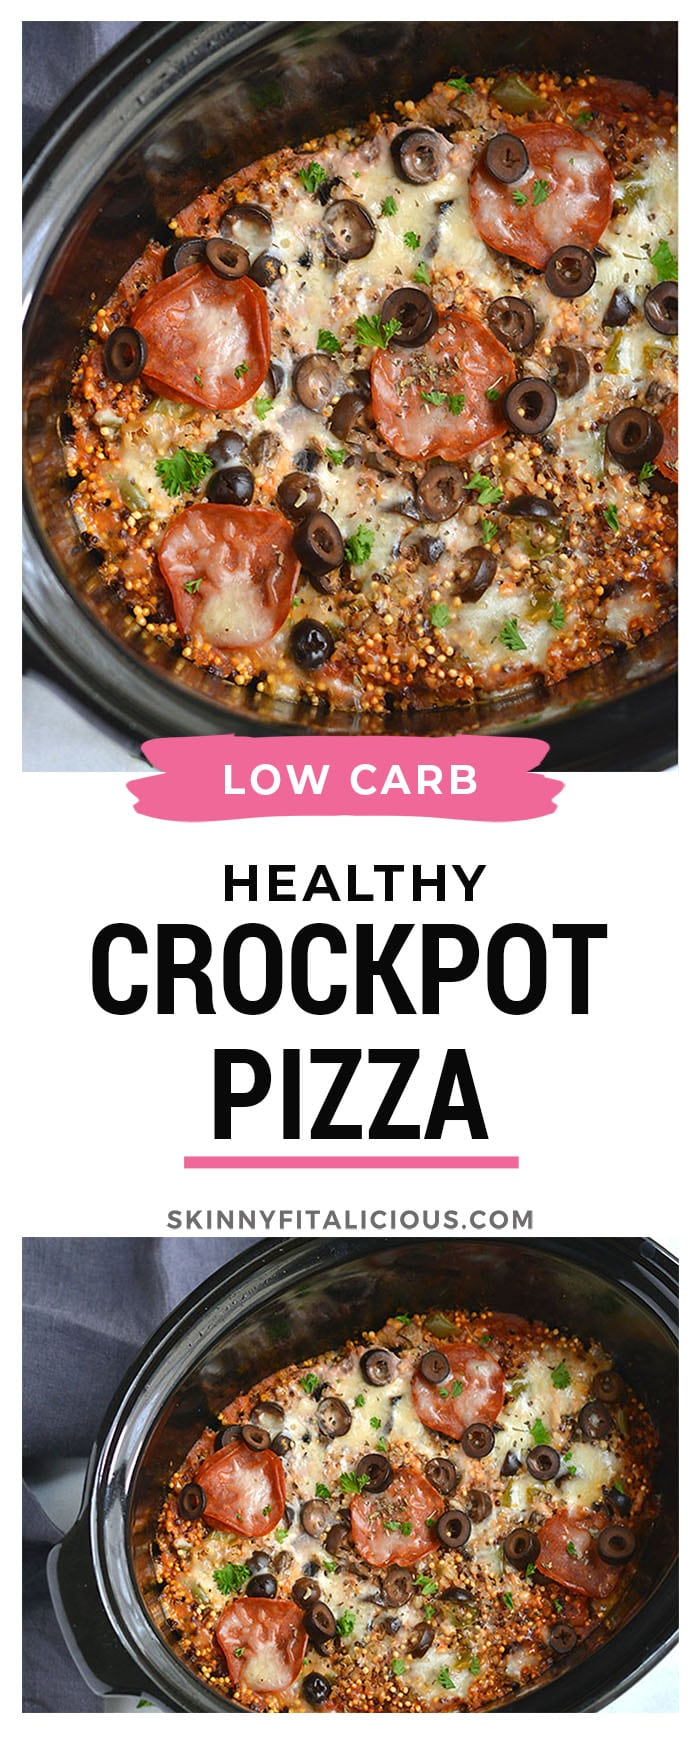 Crockpot Pizza Quinoa! This easy and healthy slow cooker meal is a lighter version of pizza with healthier ingredients. Nourishing, tasty and customizable. Gluten Free + Low Calorie